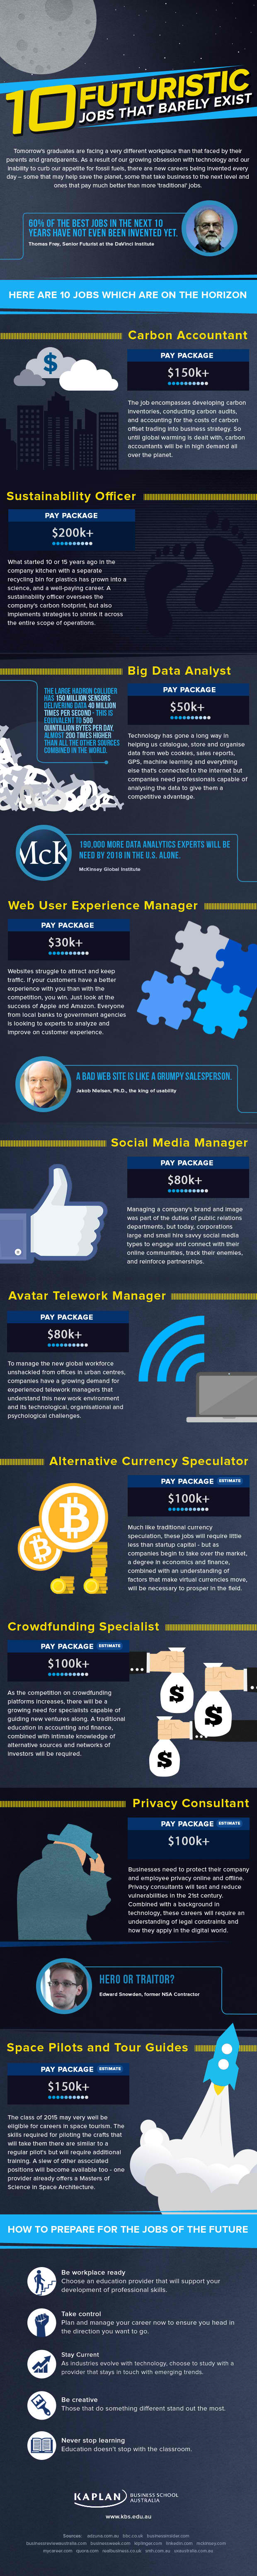 10 Futuristic Jobs That Barely Exist